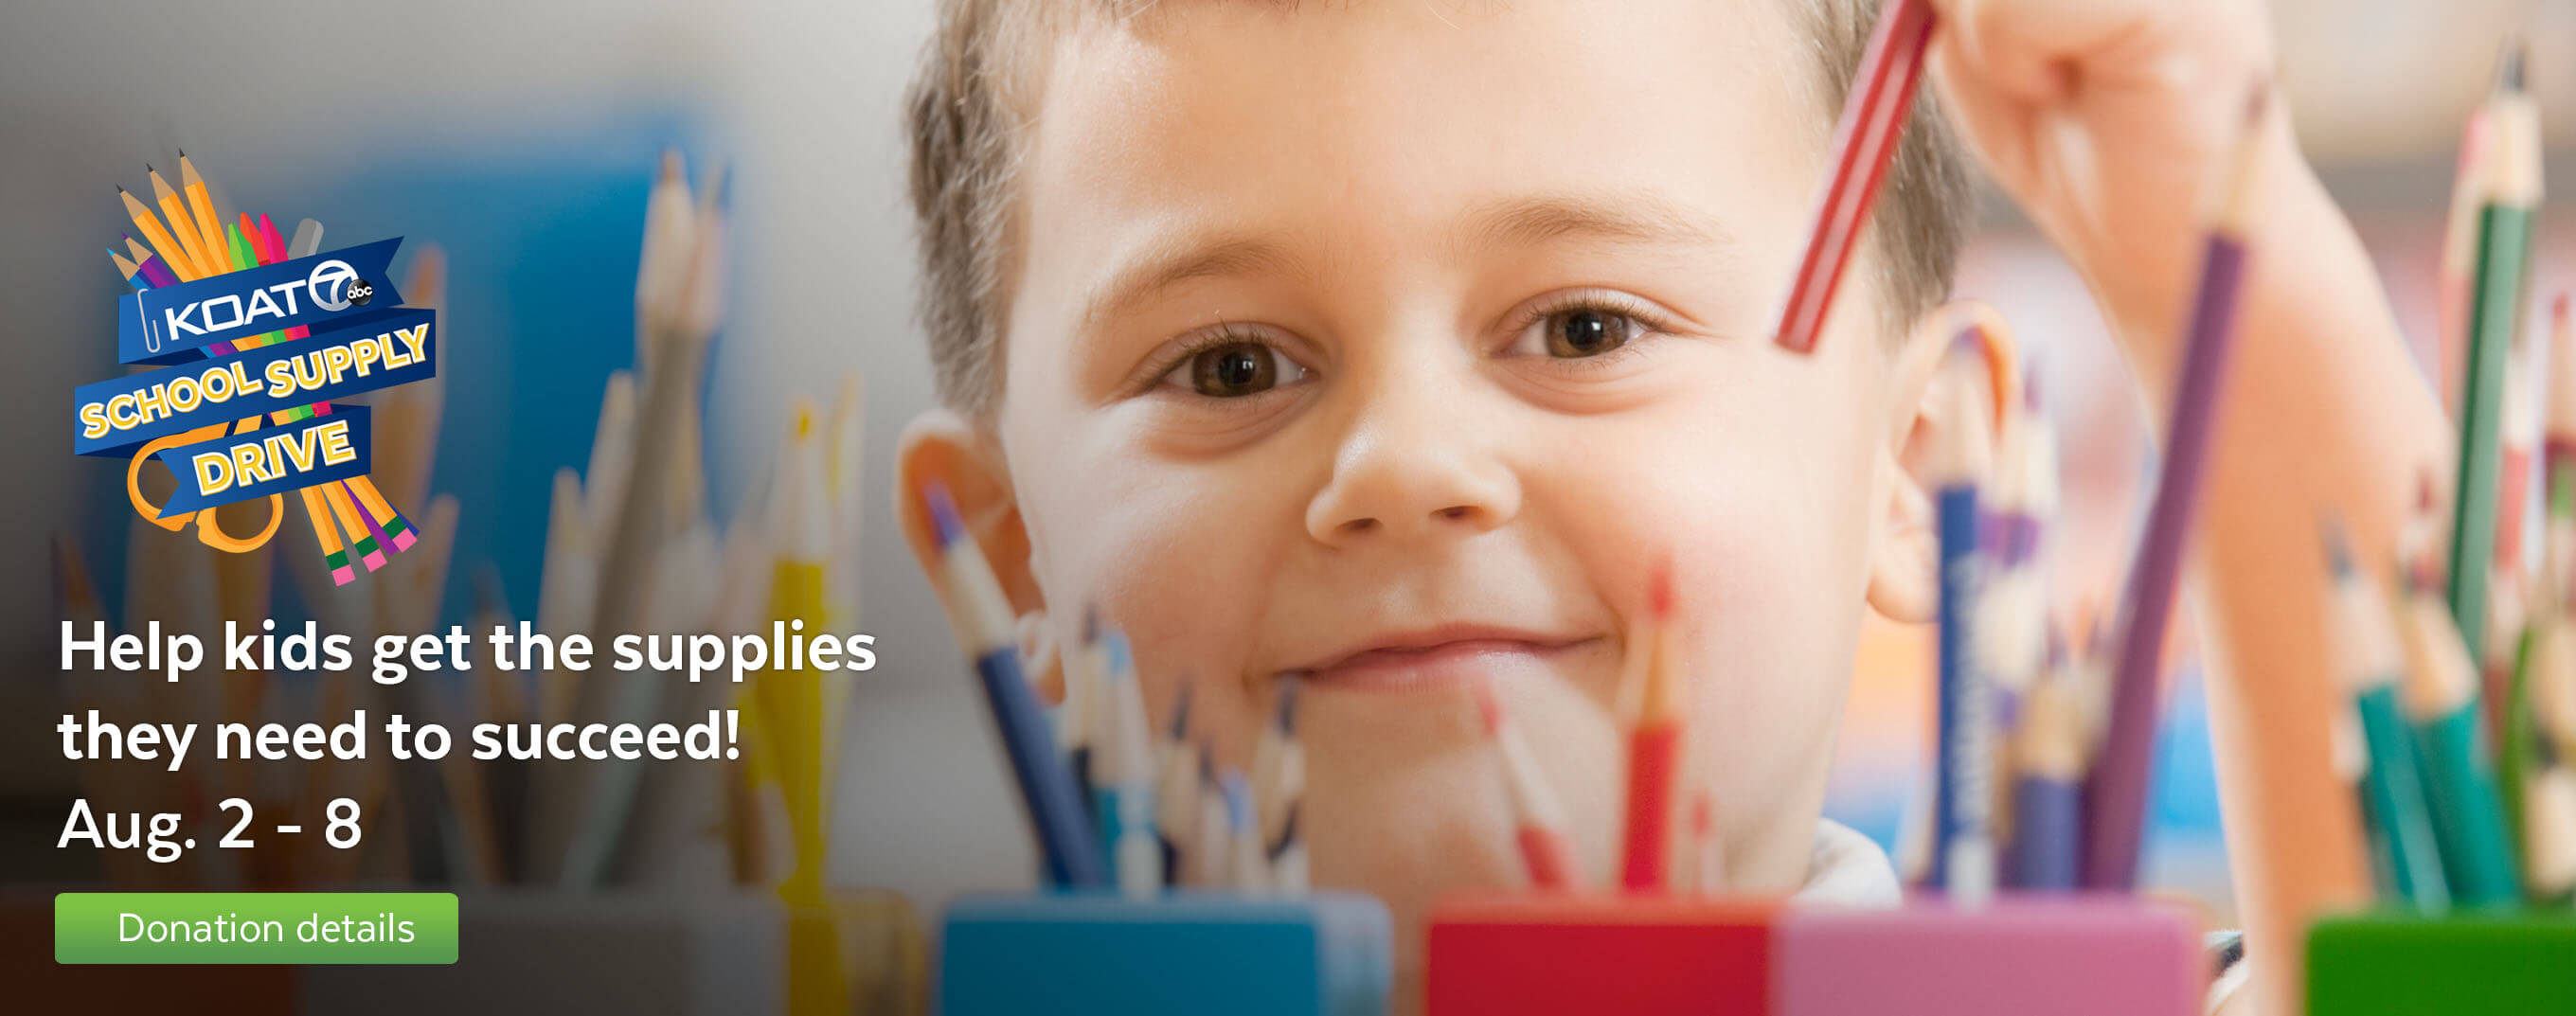 Help kids get the supplies they need to succeed by donating to the KOAT school supply drive.